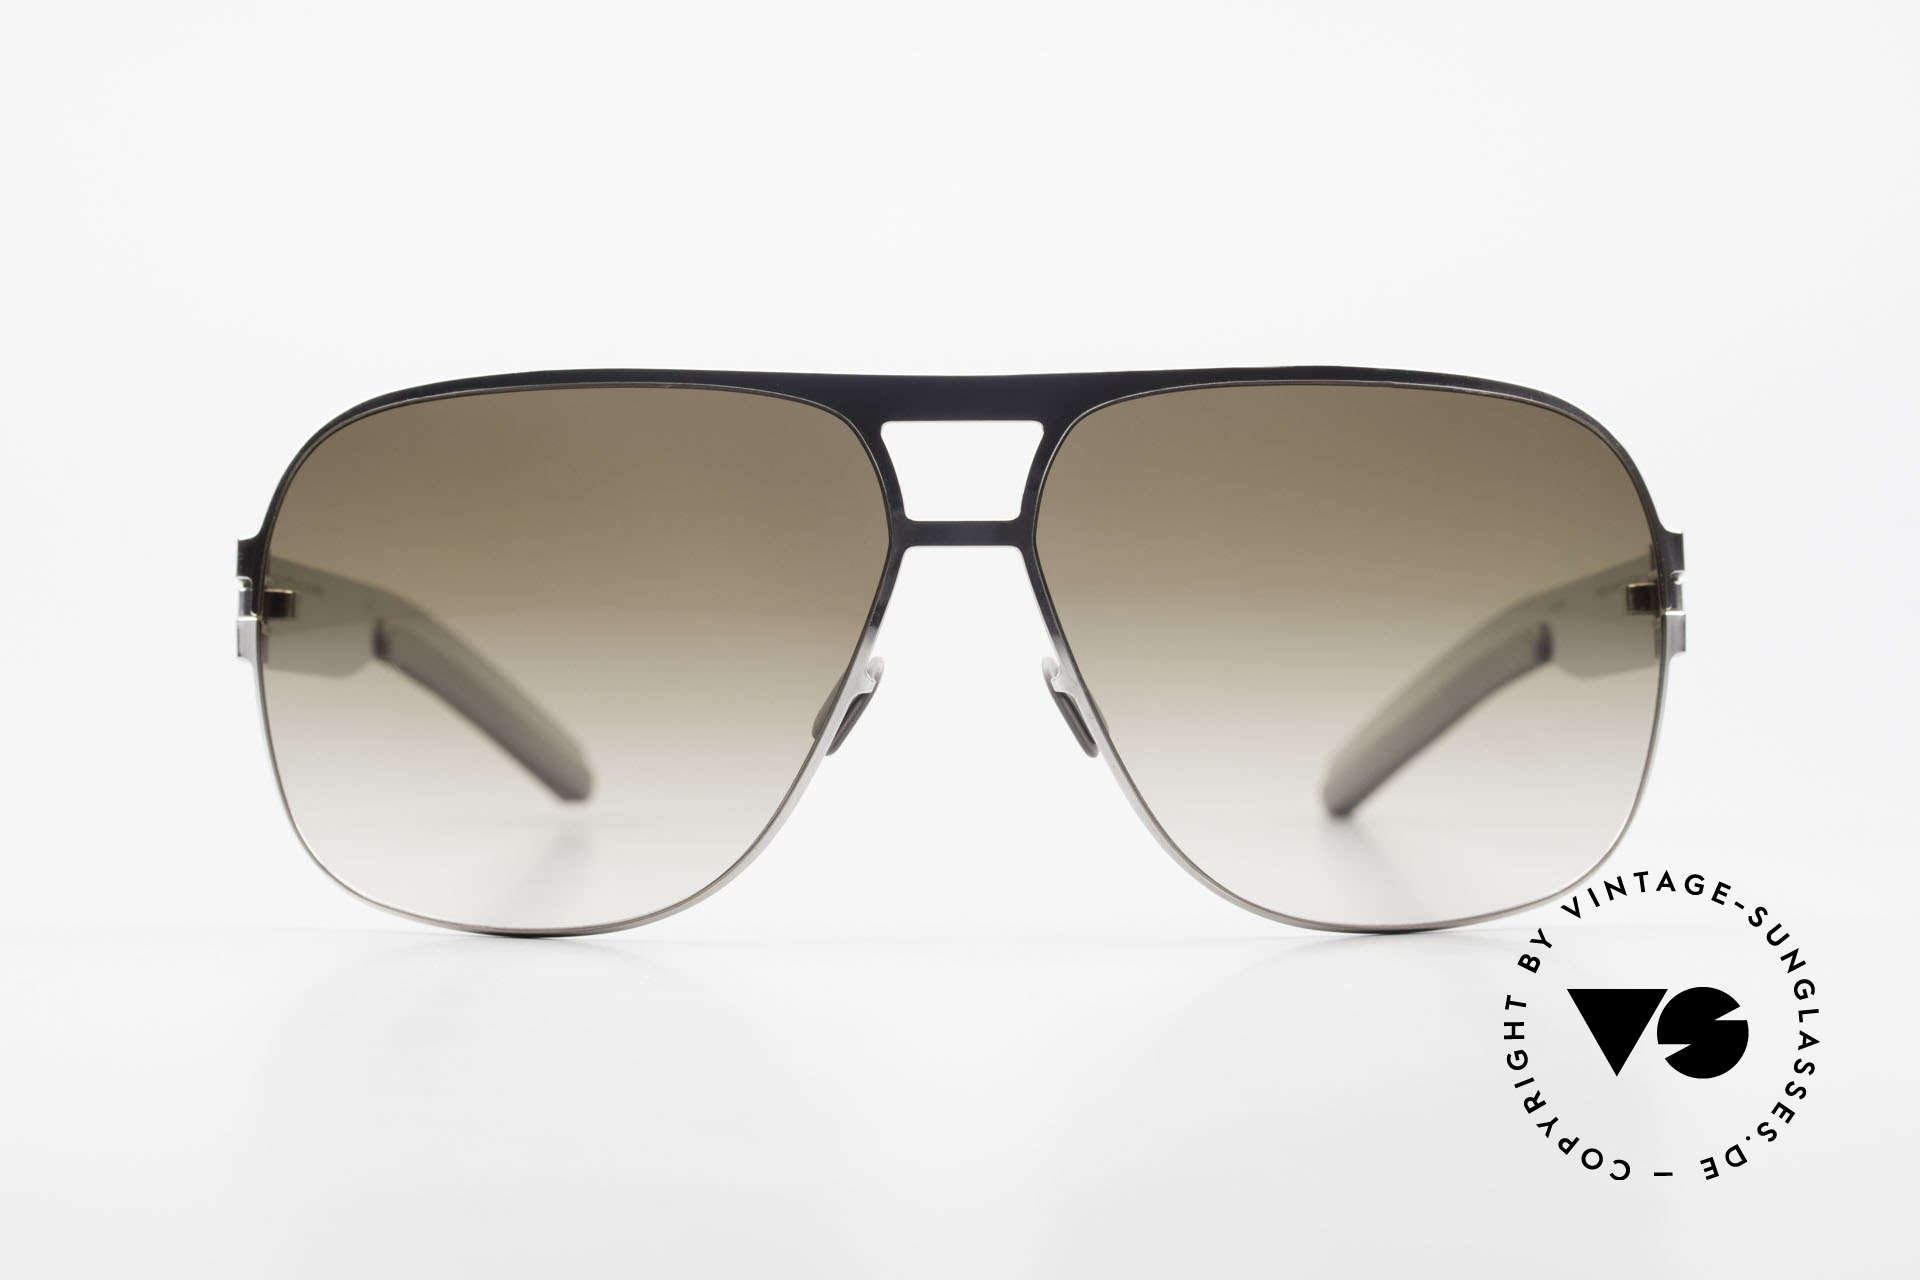 Mykita Clifford 2000's Vintage Aviator Shades, MYKITA: the youngest brand in our vintage collection, Made for Men